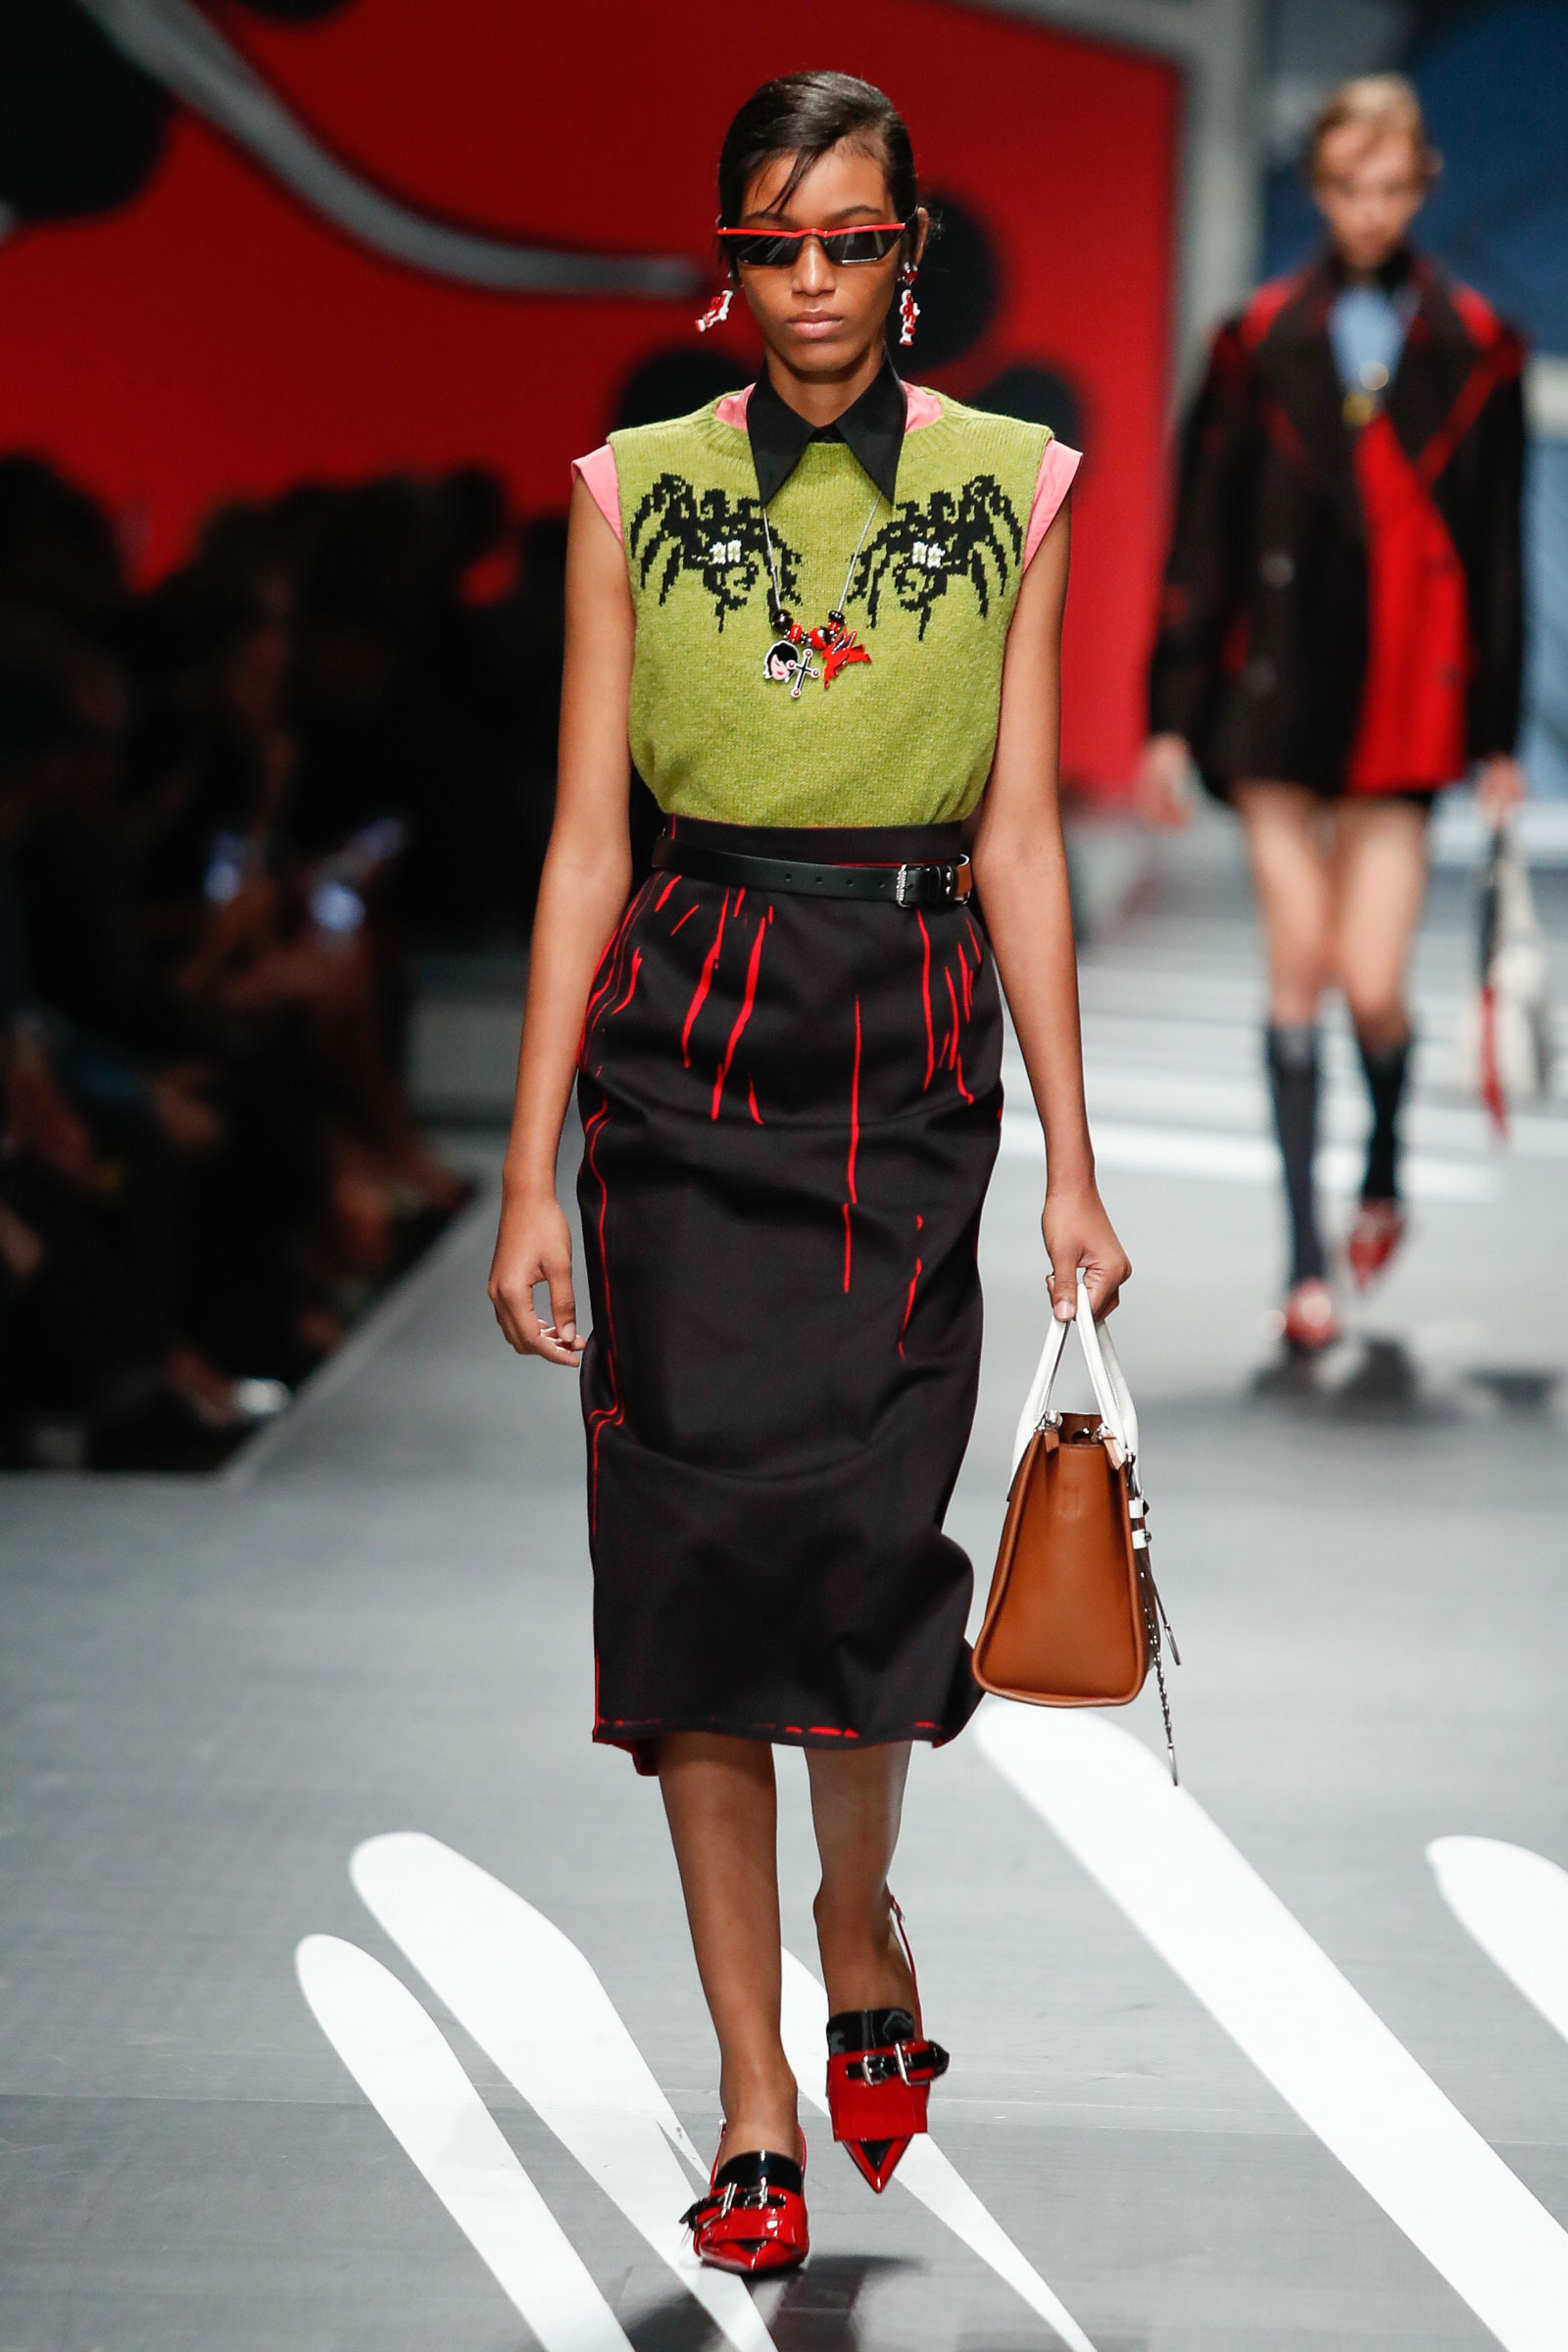 Prada Spring/Summer 2018 Women's Collection